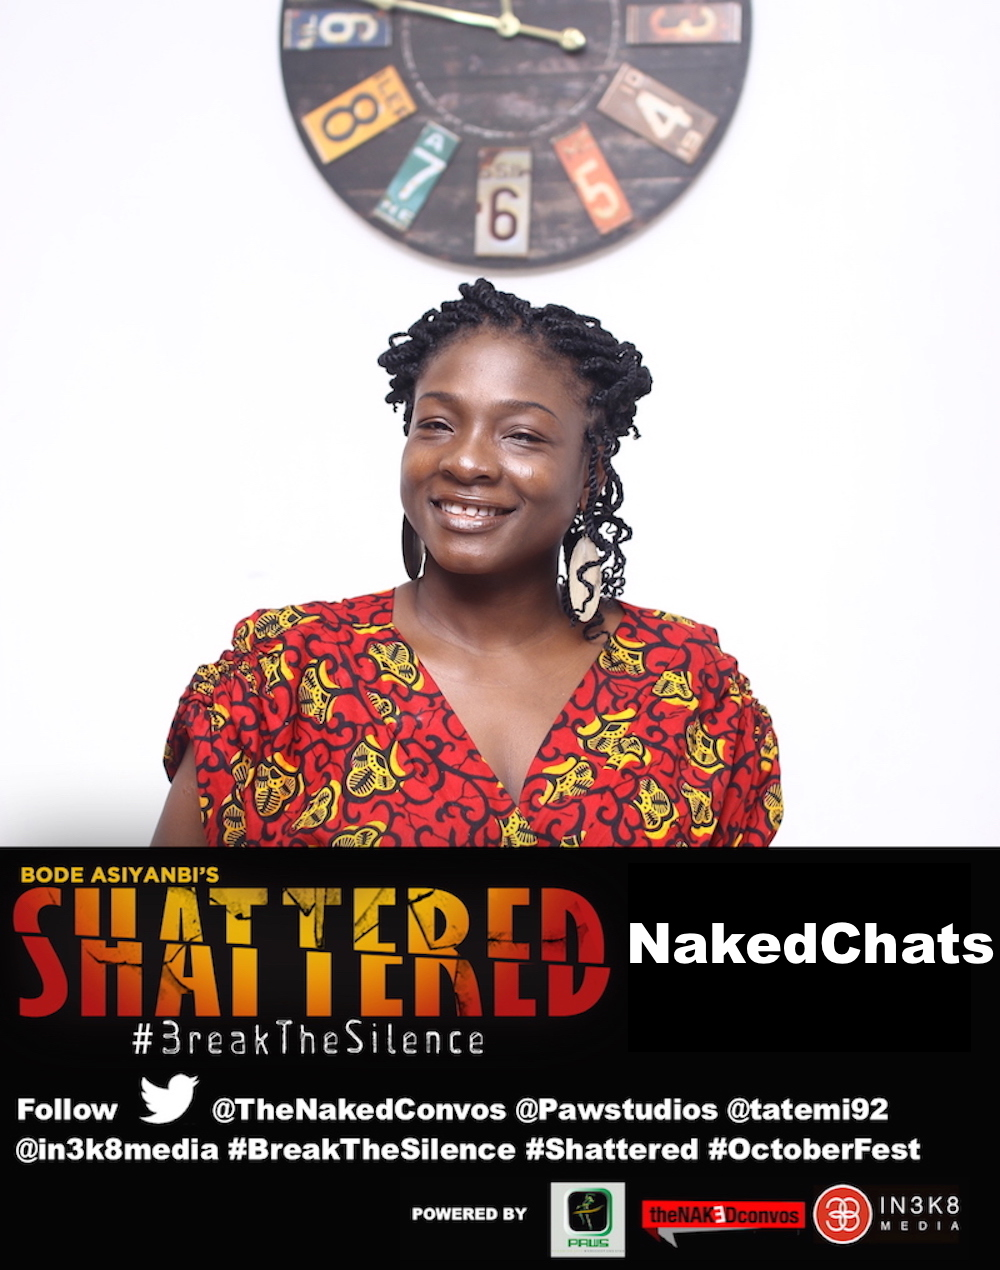 Shattered: TheNakedConvos #breakthesilence Twitter Chat Part 2